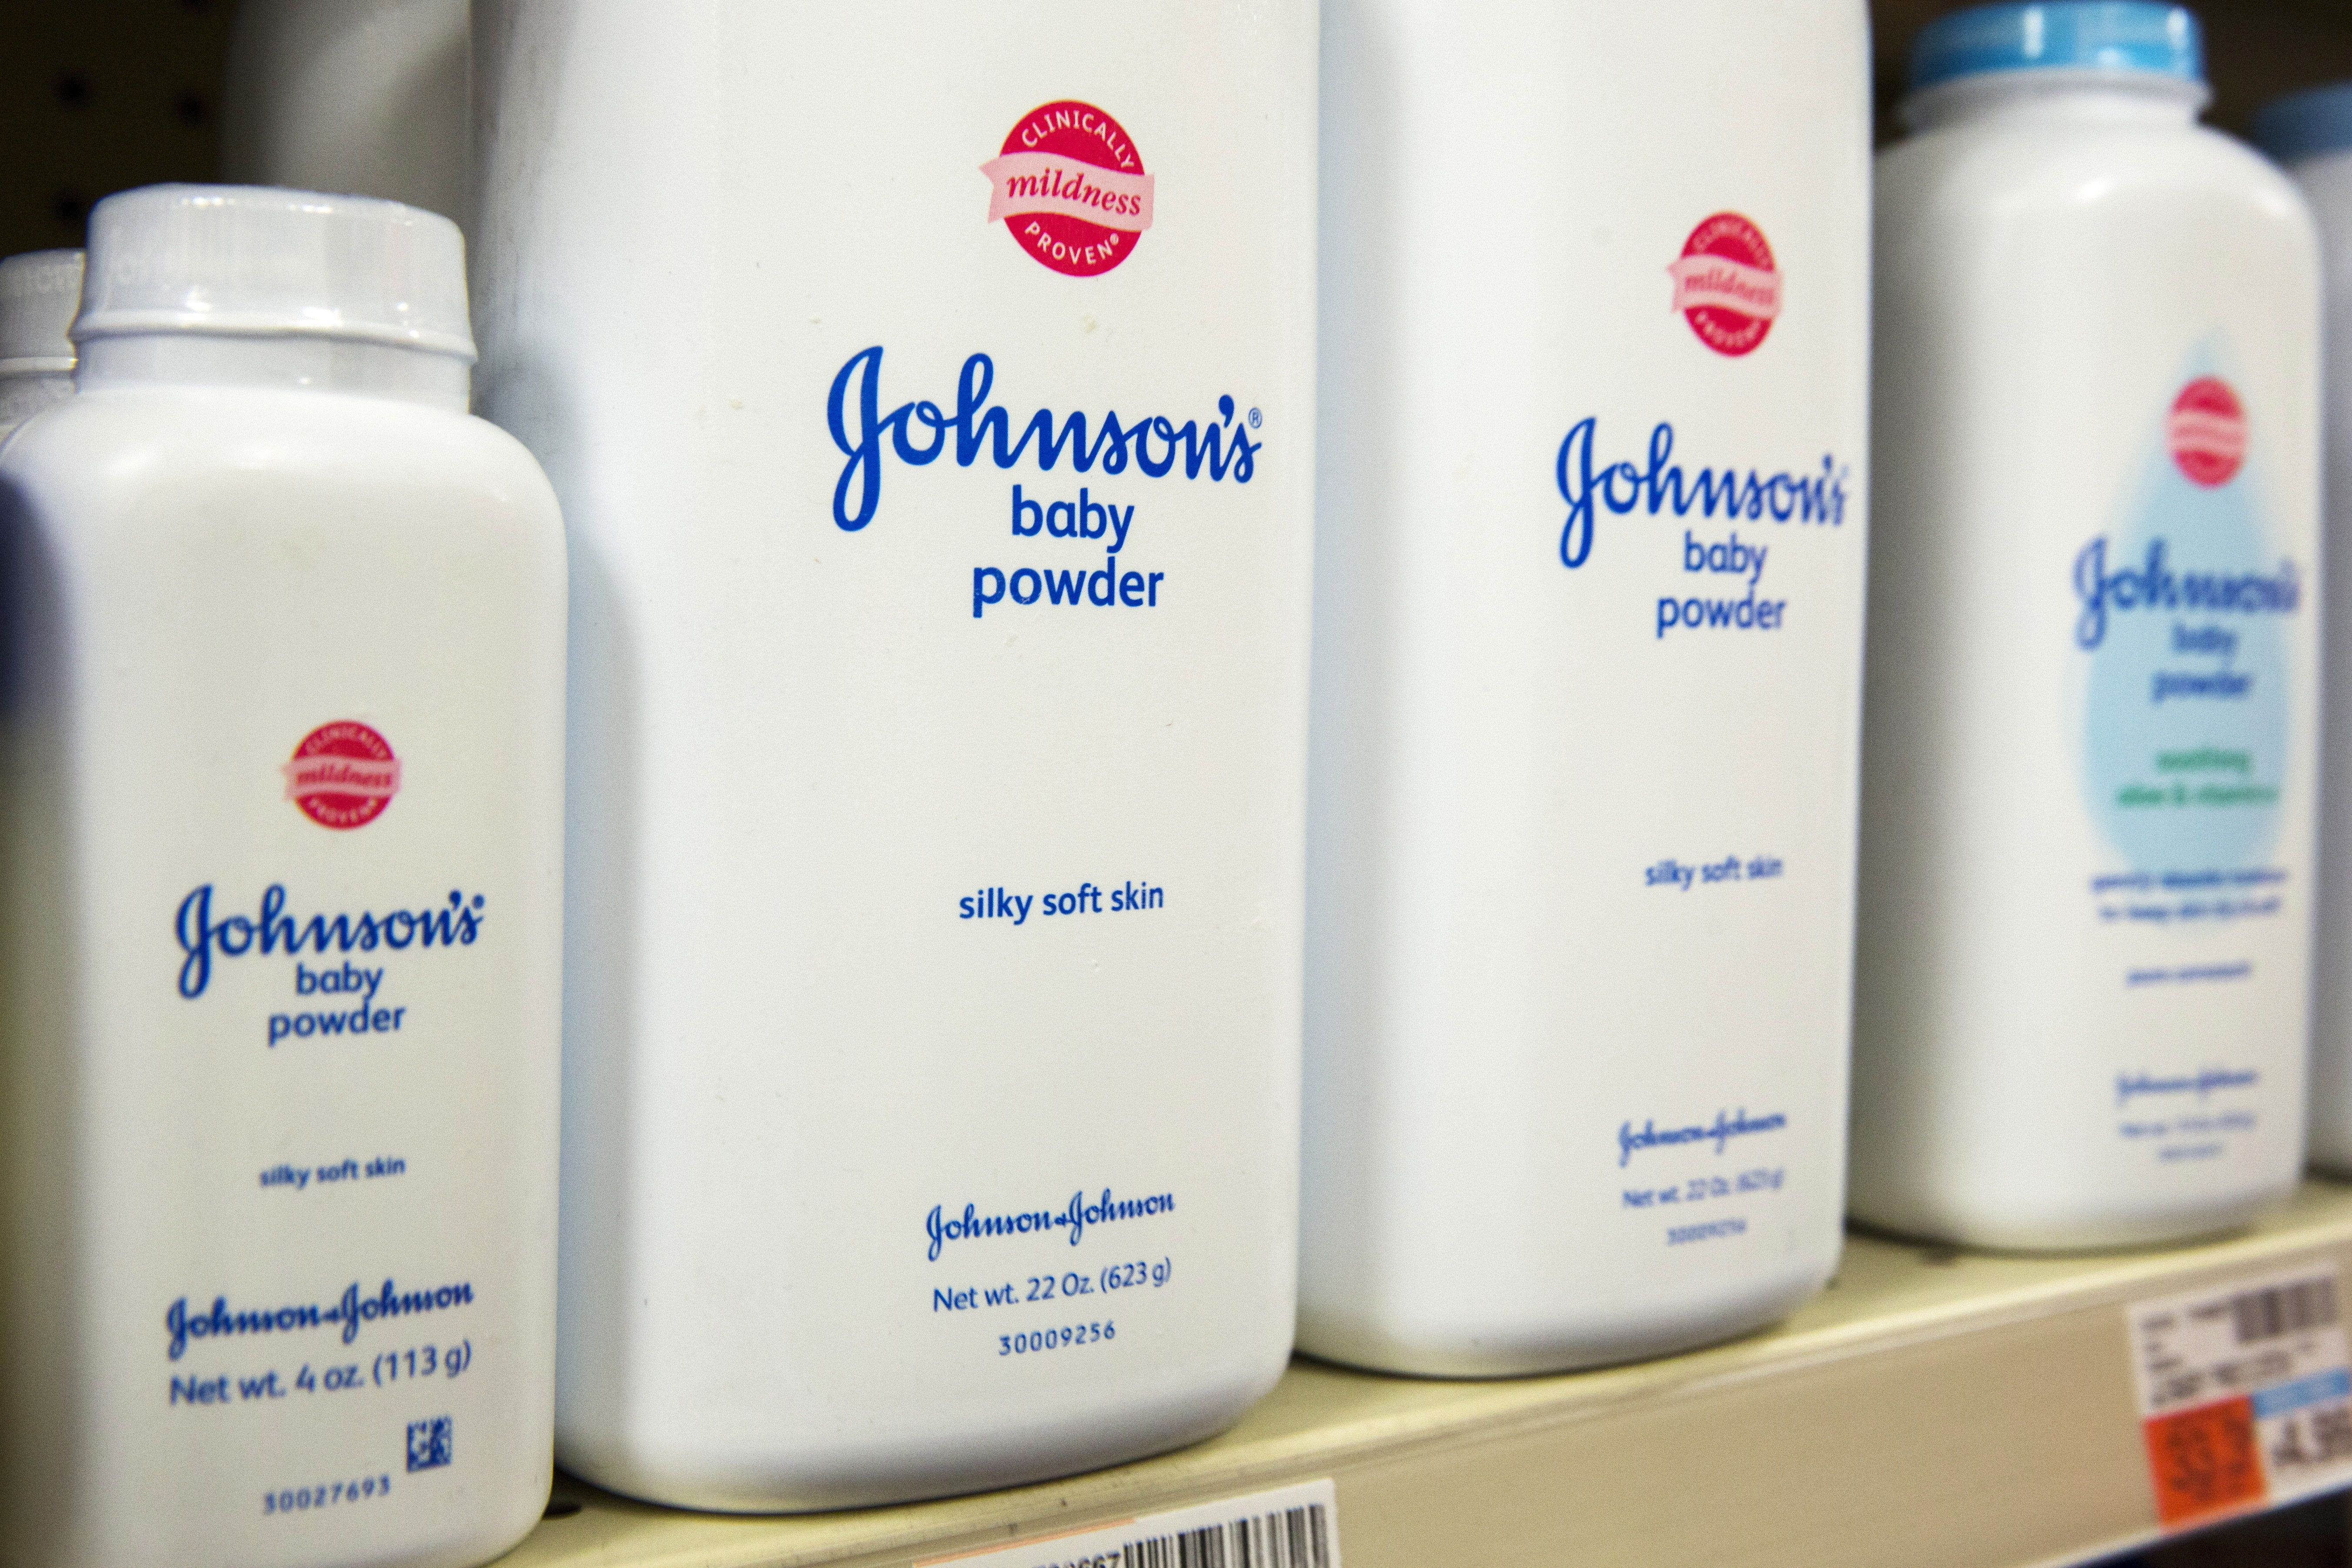 Cancer Patient Wins Record $417 Million Payout In Johnson & Johnson Talc Case